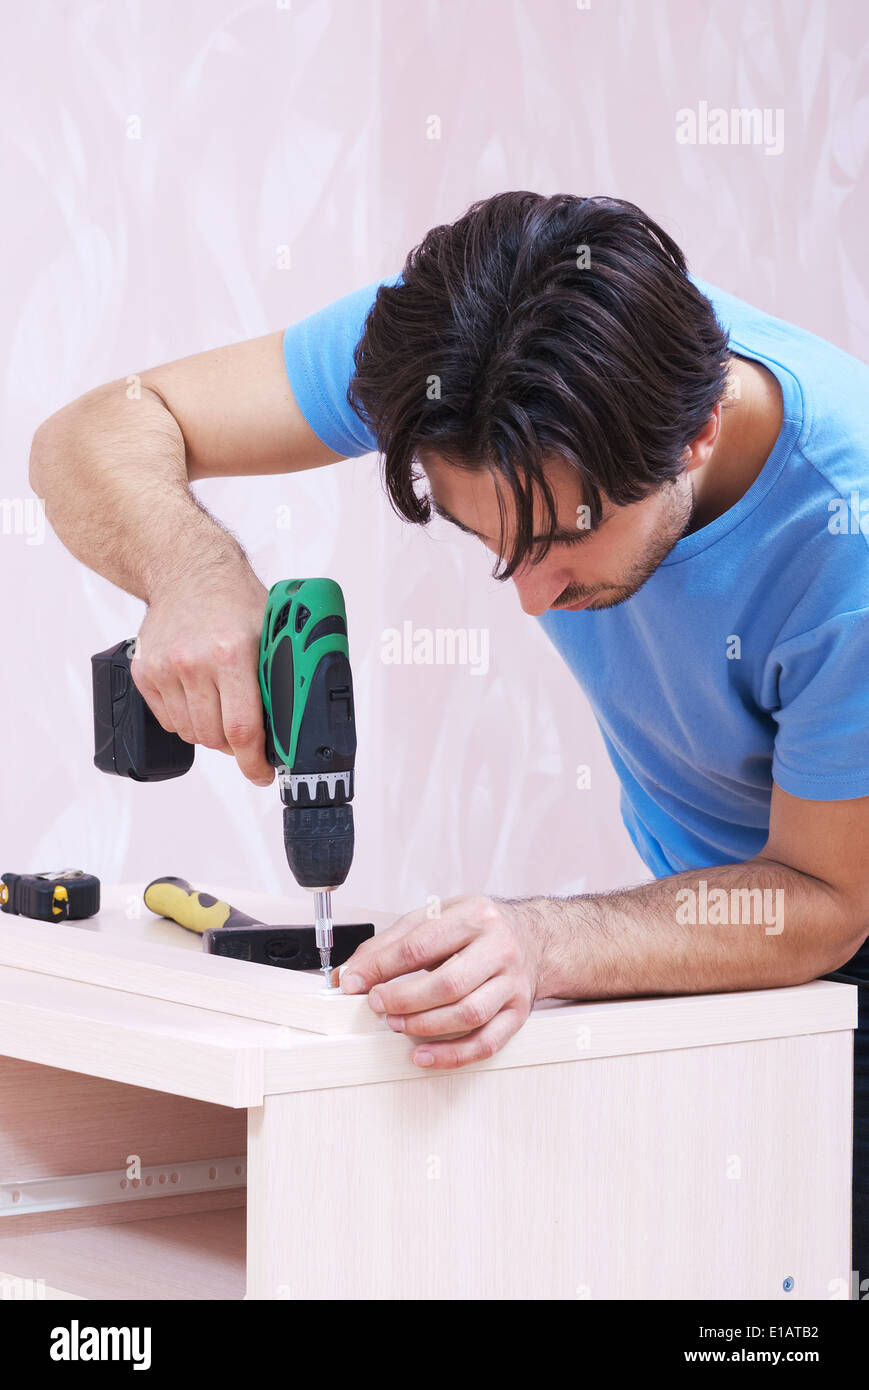 Carpenter collects wood furniture with a drill - Stock Image